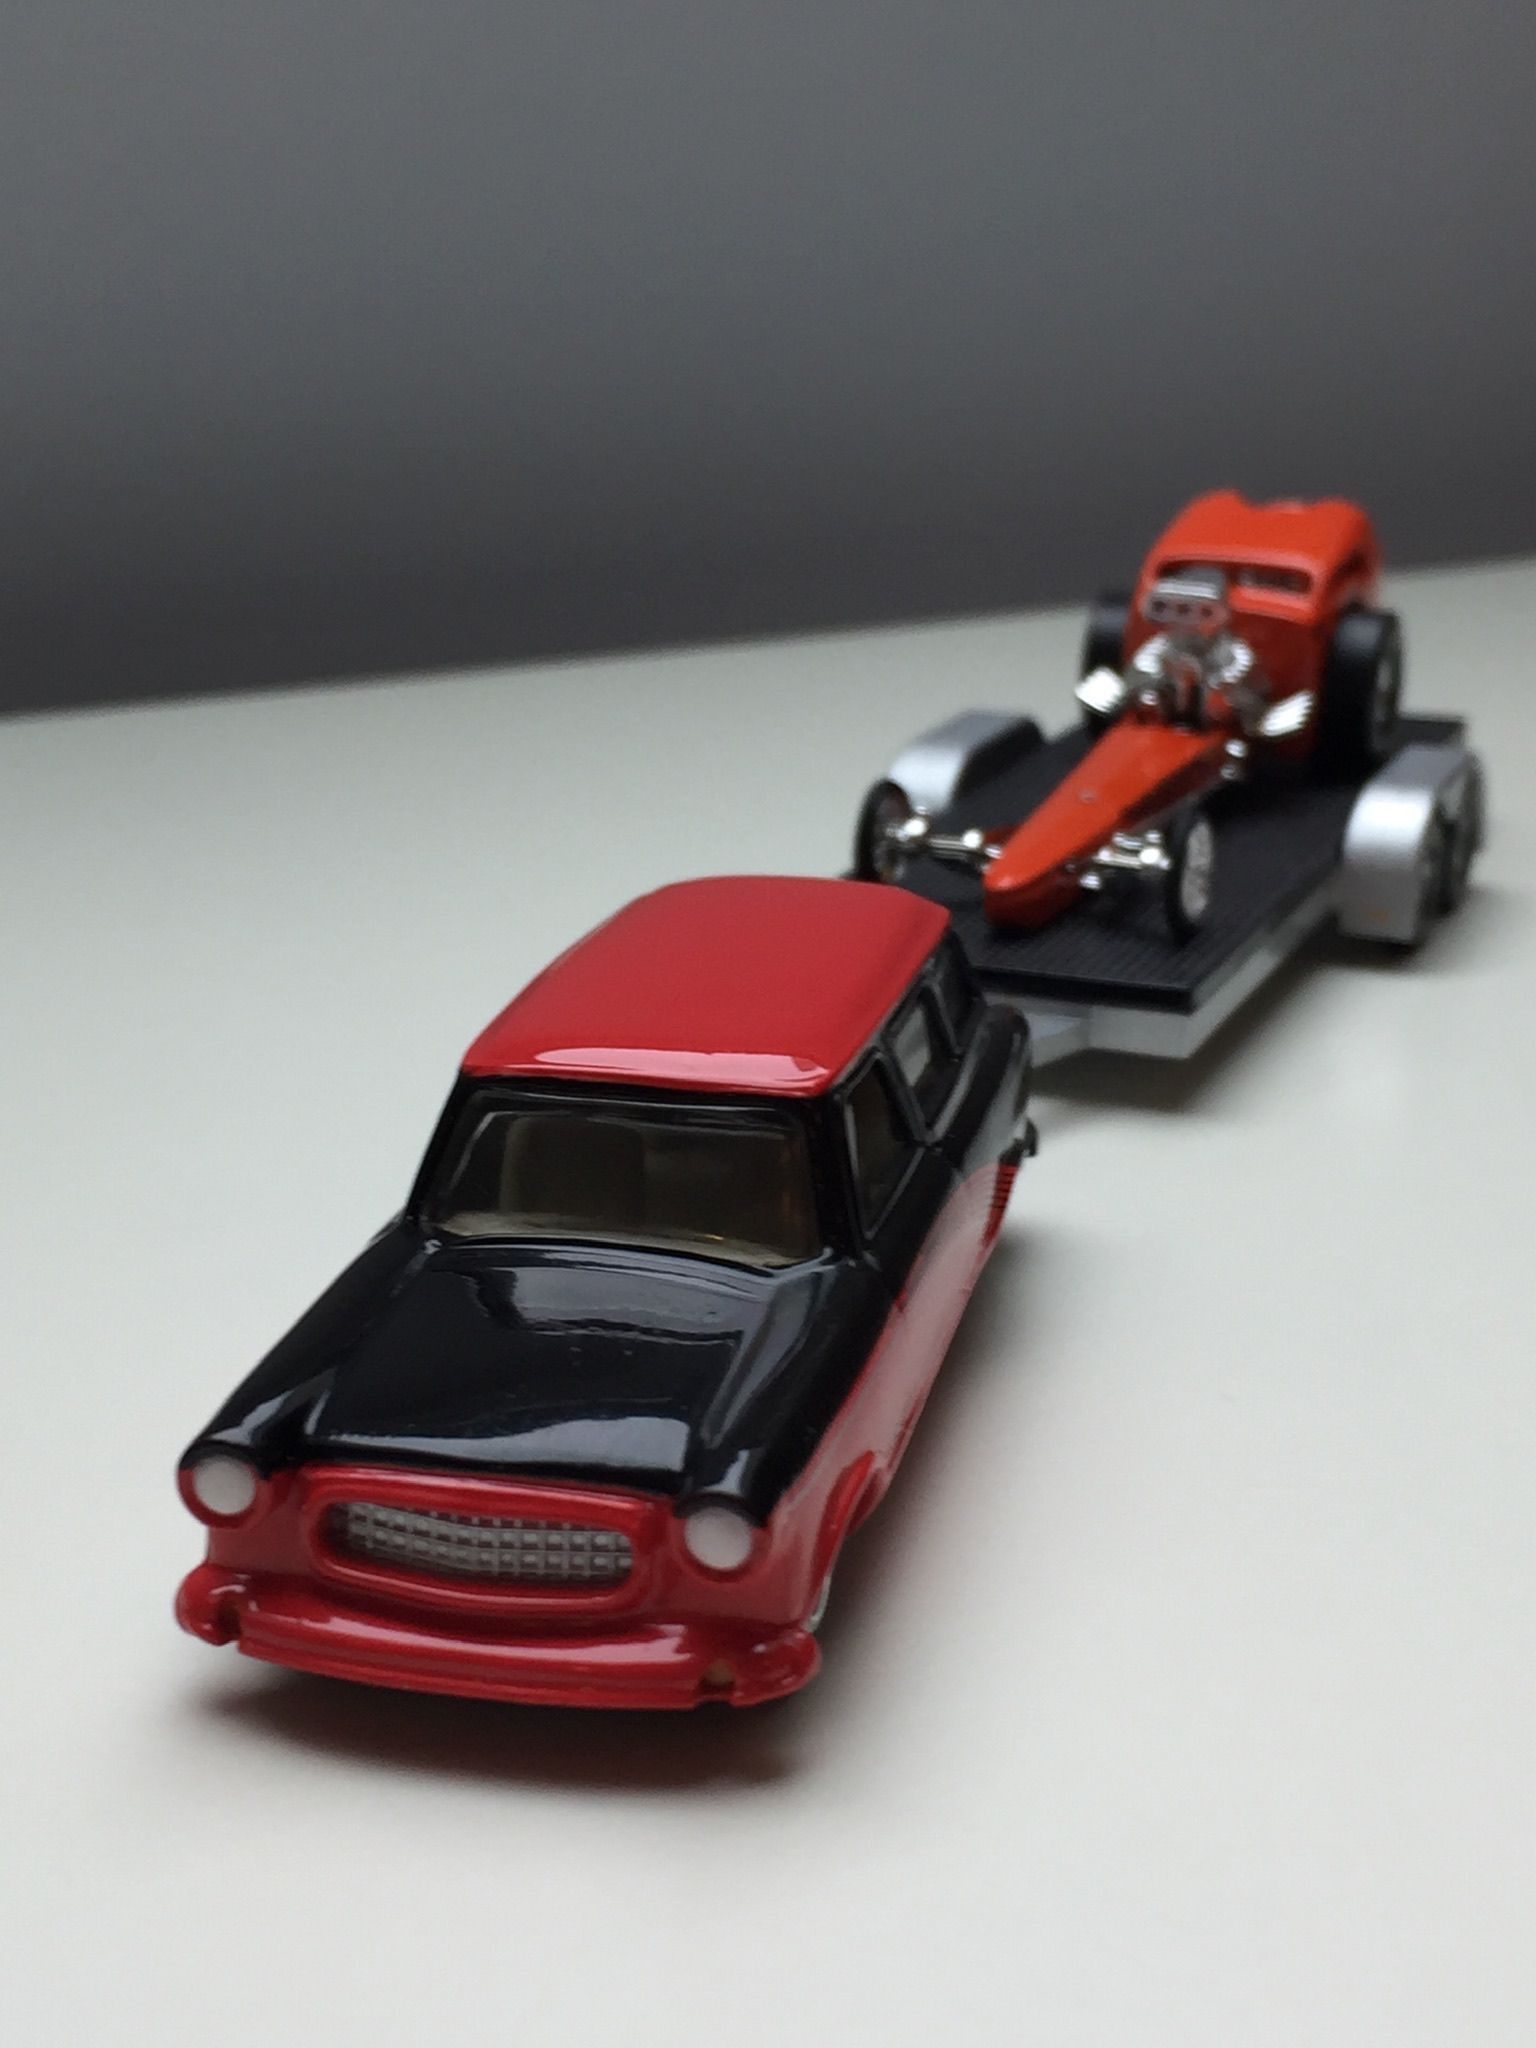 Pin by Eric N on Diecast Haulers Hot wheels, Toys, Diecast